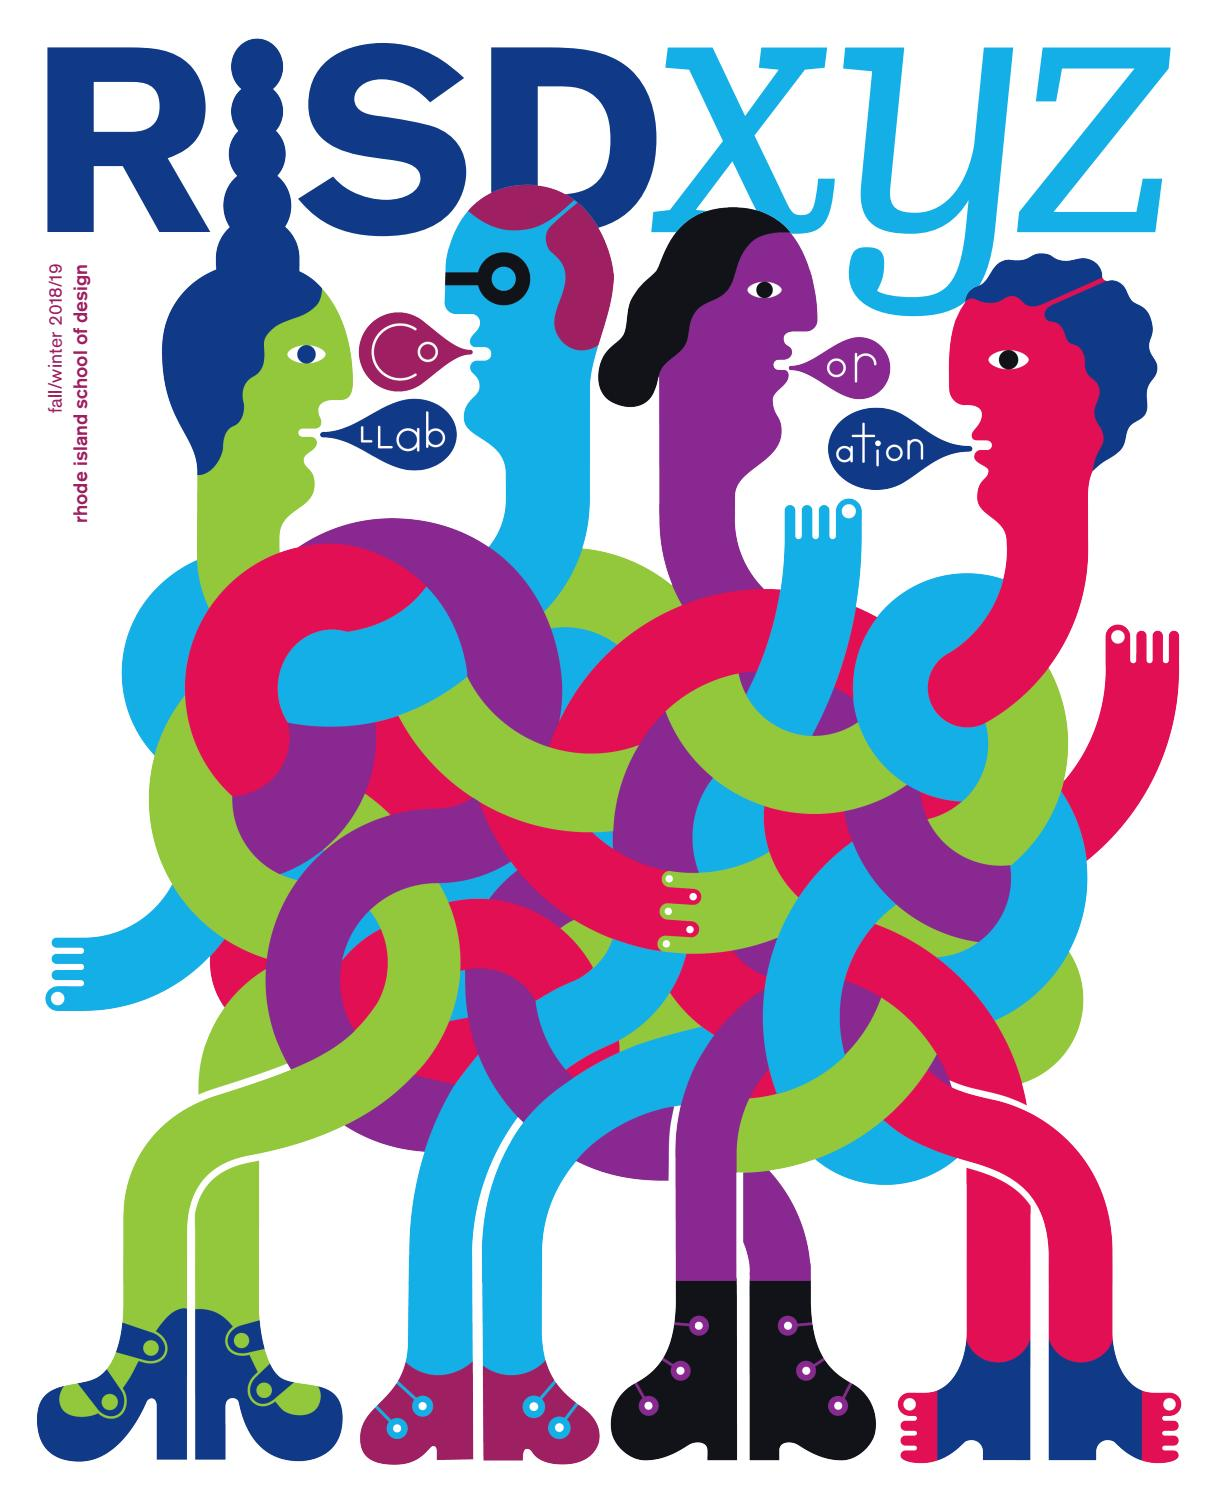 13c316c3e4 RISD XYZ Fall/Winter 2018/19 by Rhode Island School of Design - issuu